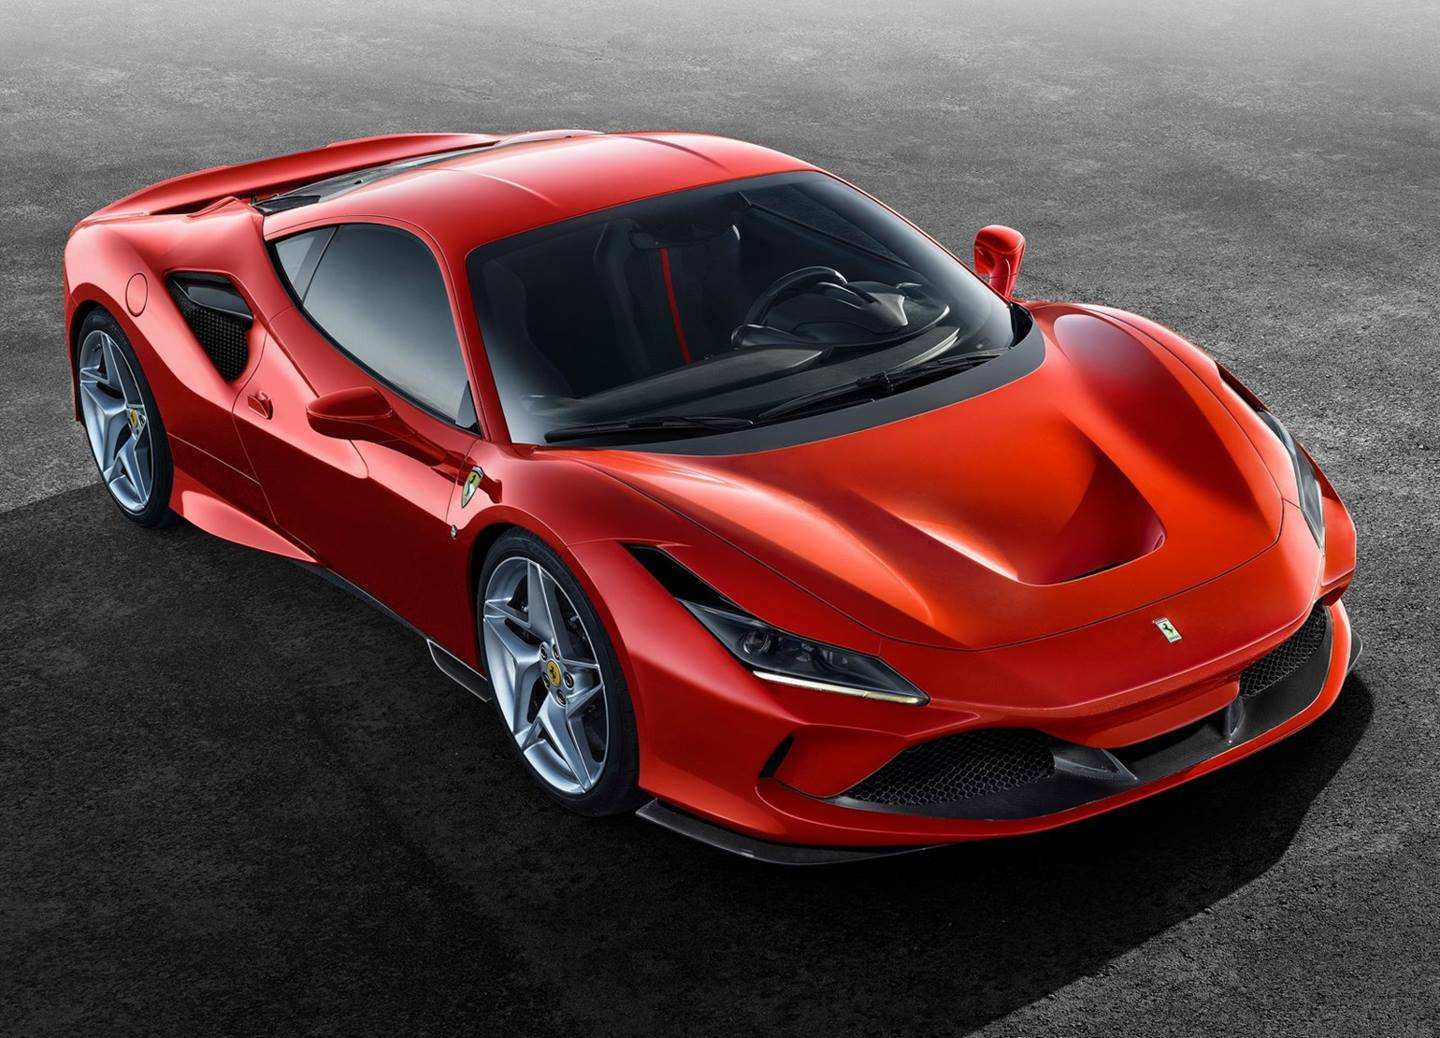 97 Gallery of Ferrari V 2020 Specs for Ferrari V 2020